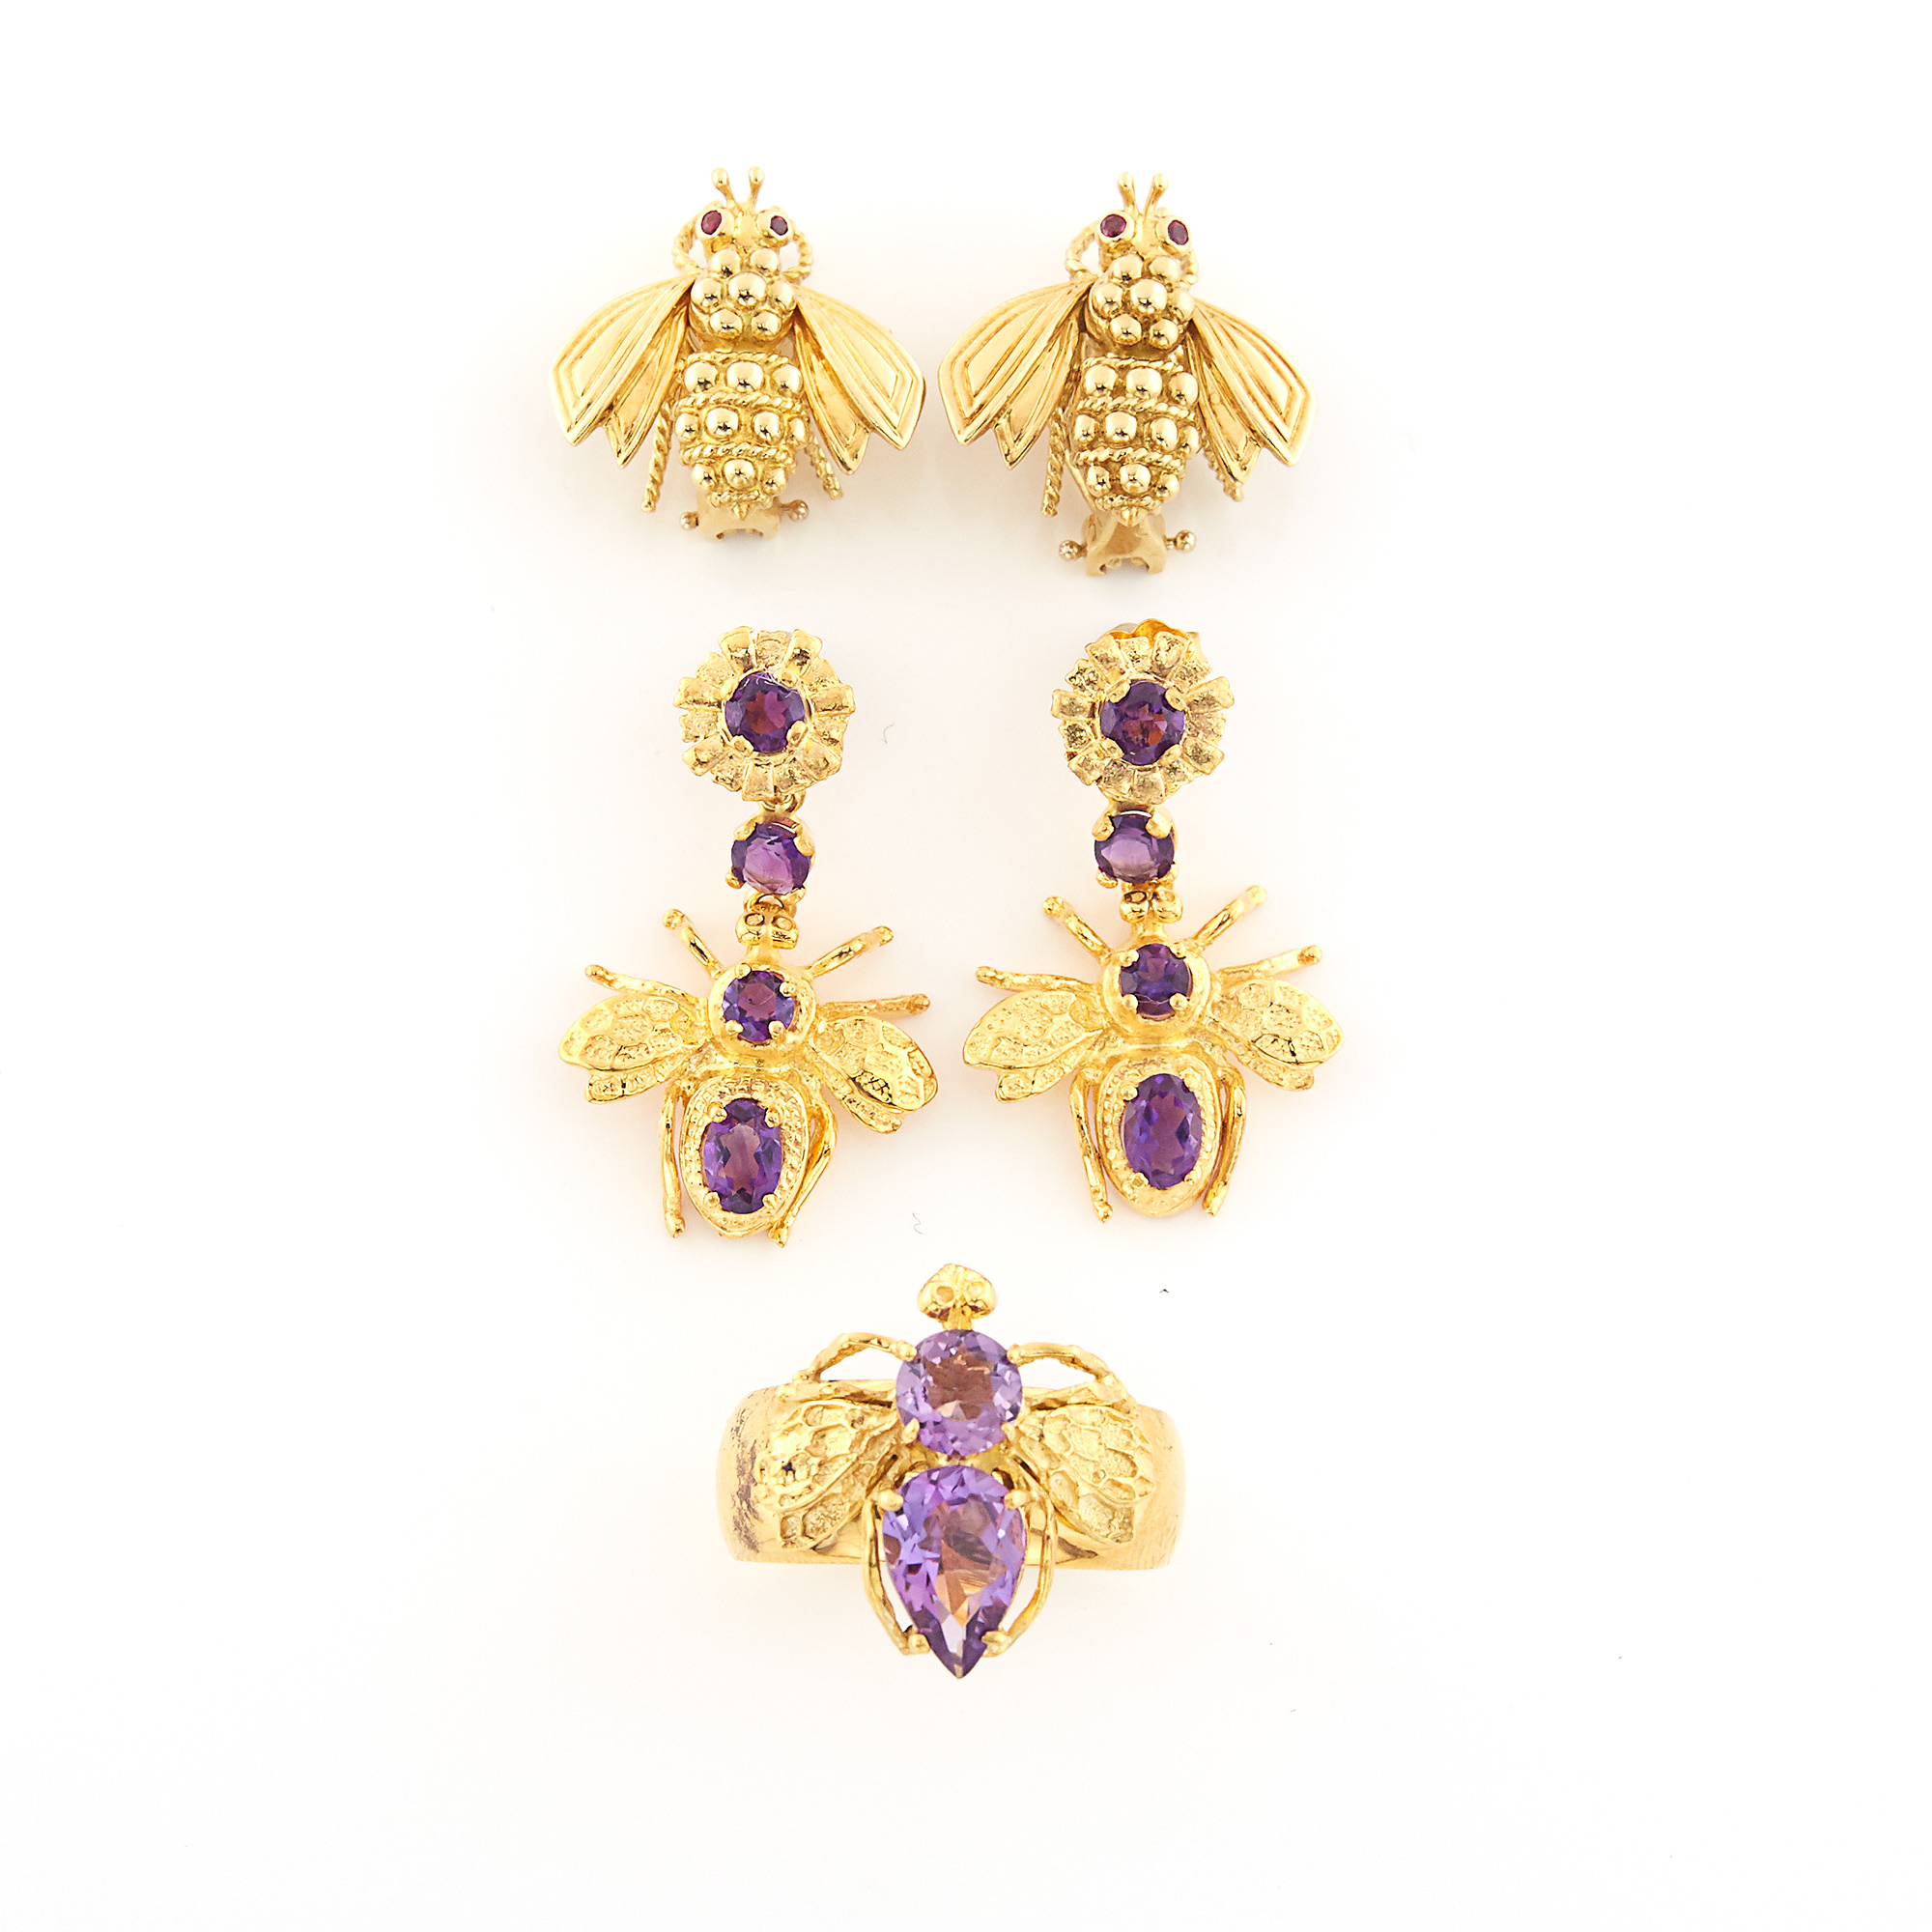 Lot image - Group of Gold and Amethyst Insect Jewelry